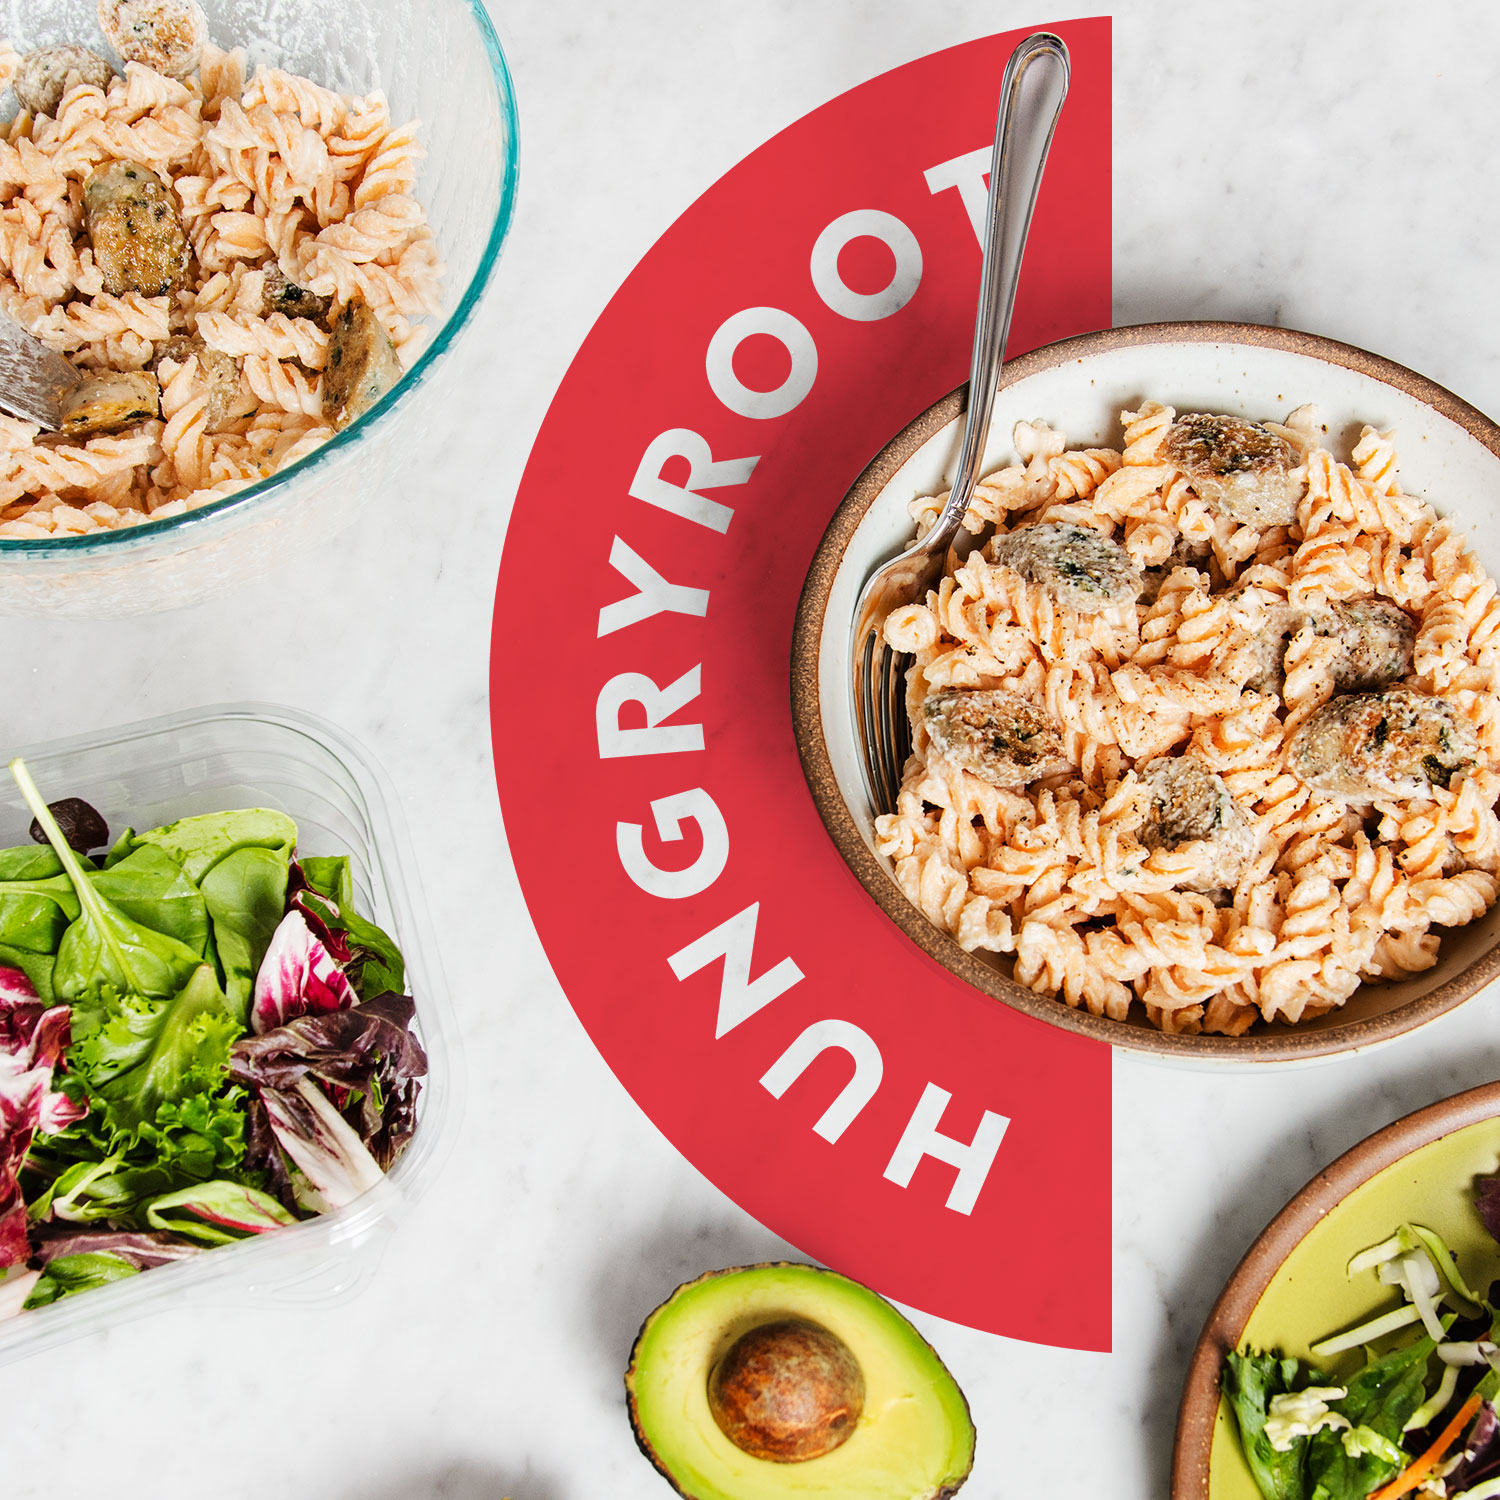 Hungryroot: Healthy Food For Life